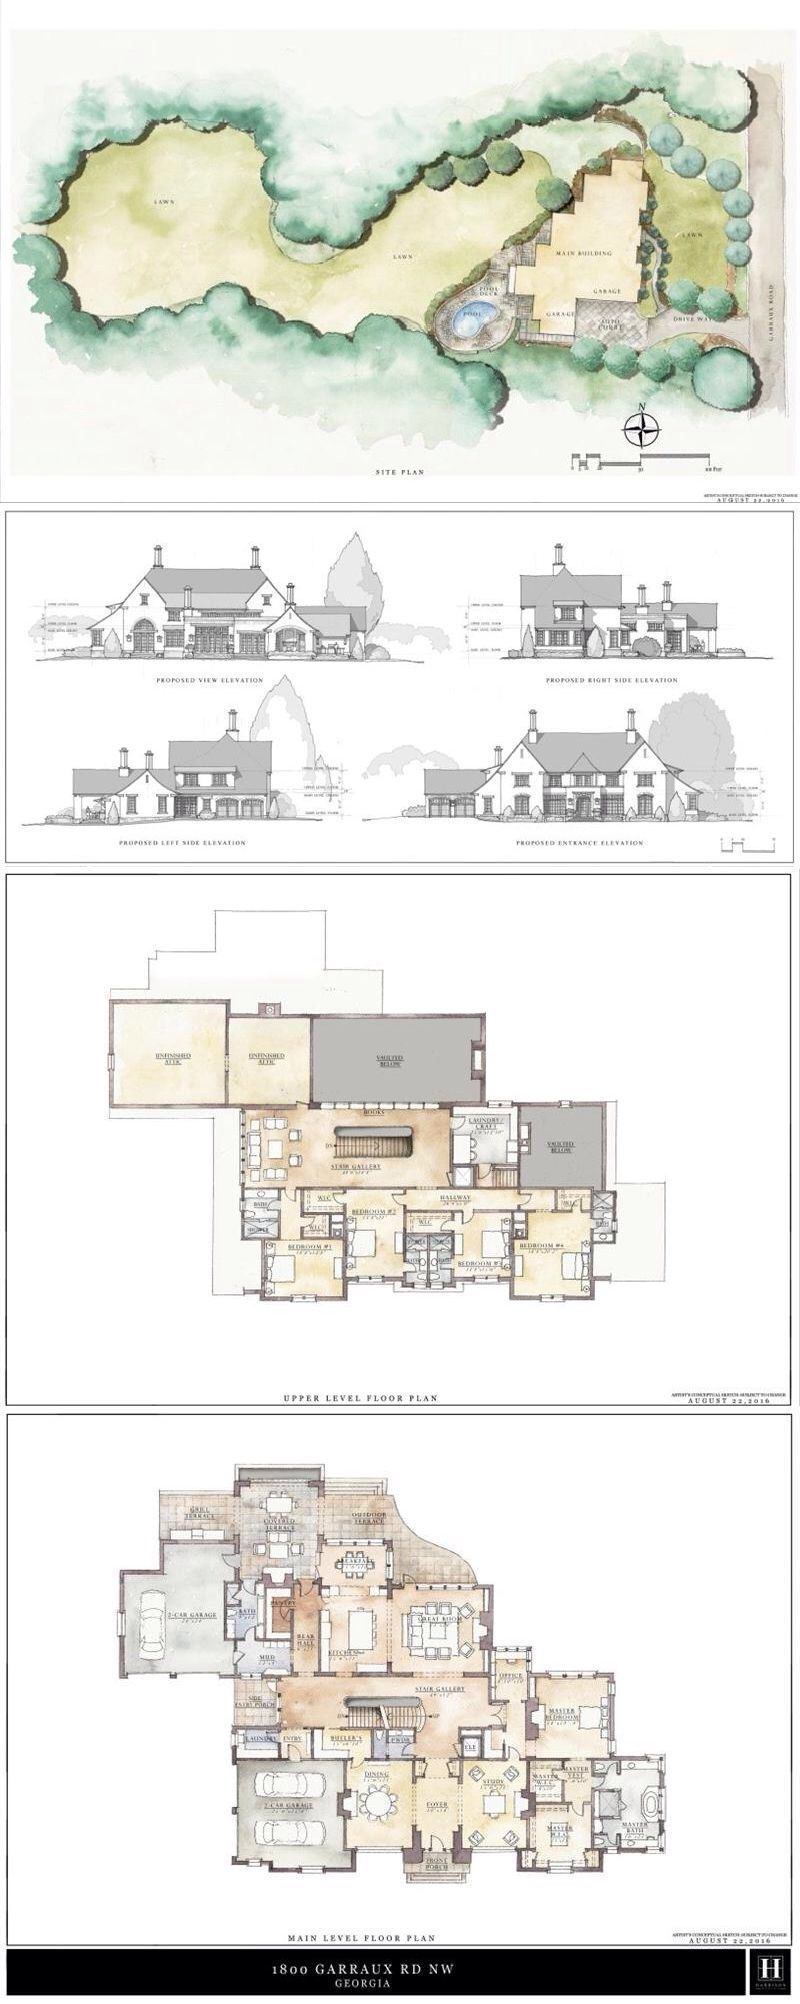 1800 Garraux Road Nw Atlanta Dorsey Alston How To Plan Luxury Plan School Floor Plan